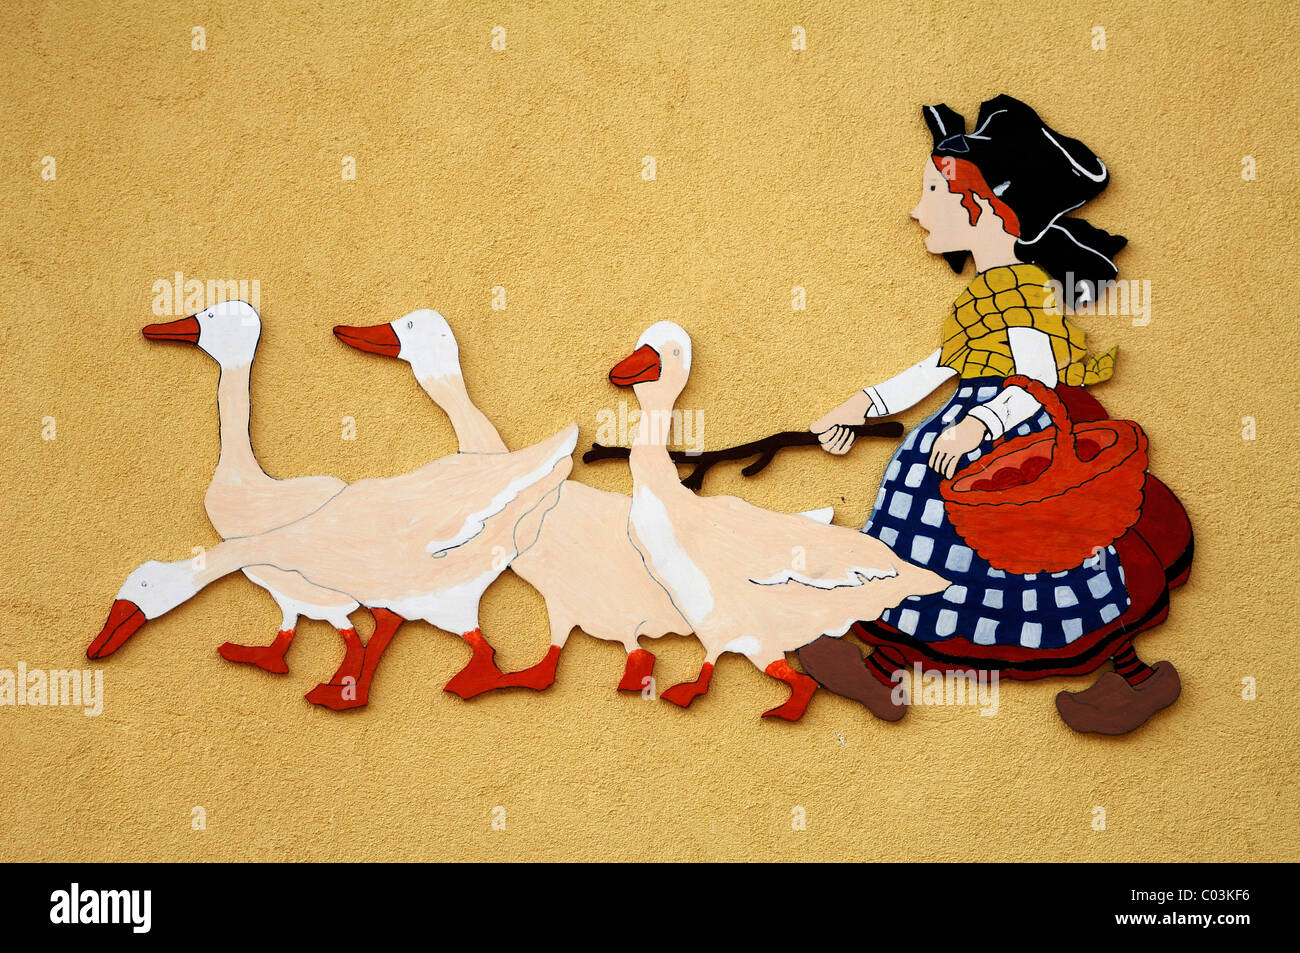 Geese Girl Stock Photos & Geese Girl Stock Images - Alamy